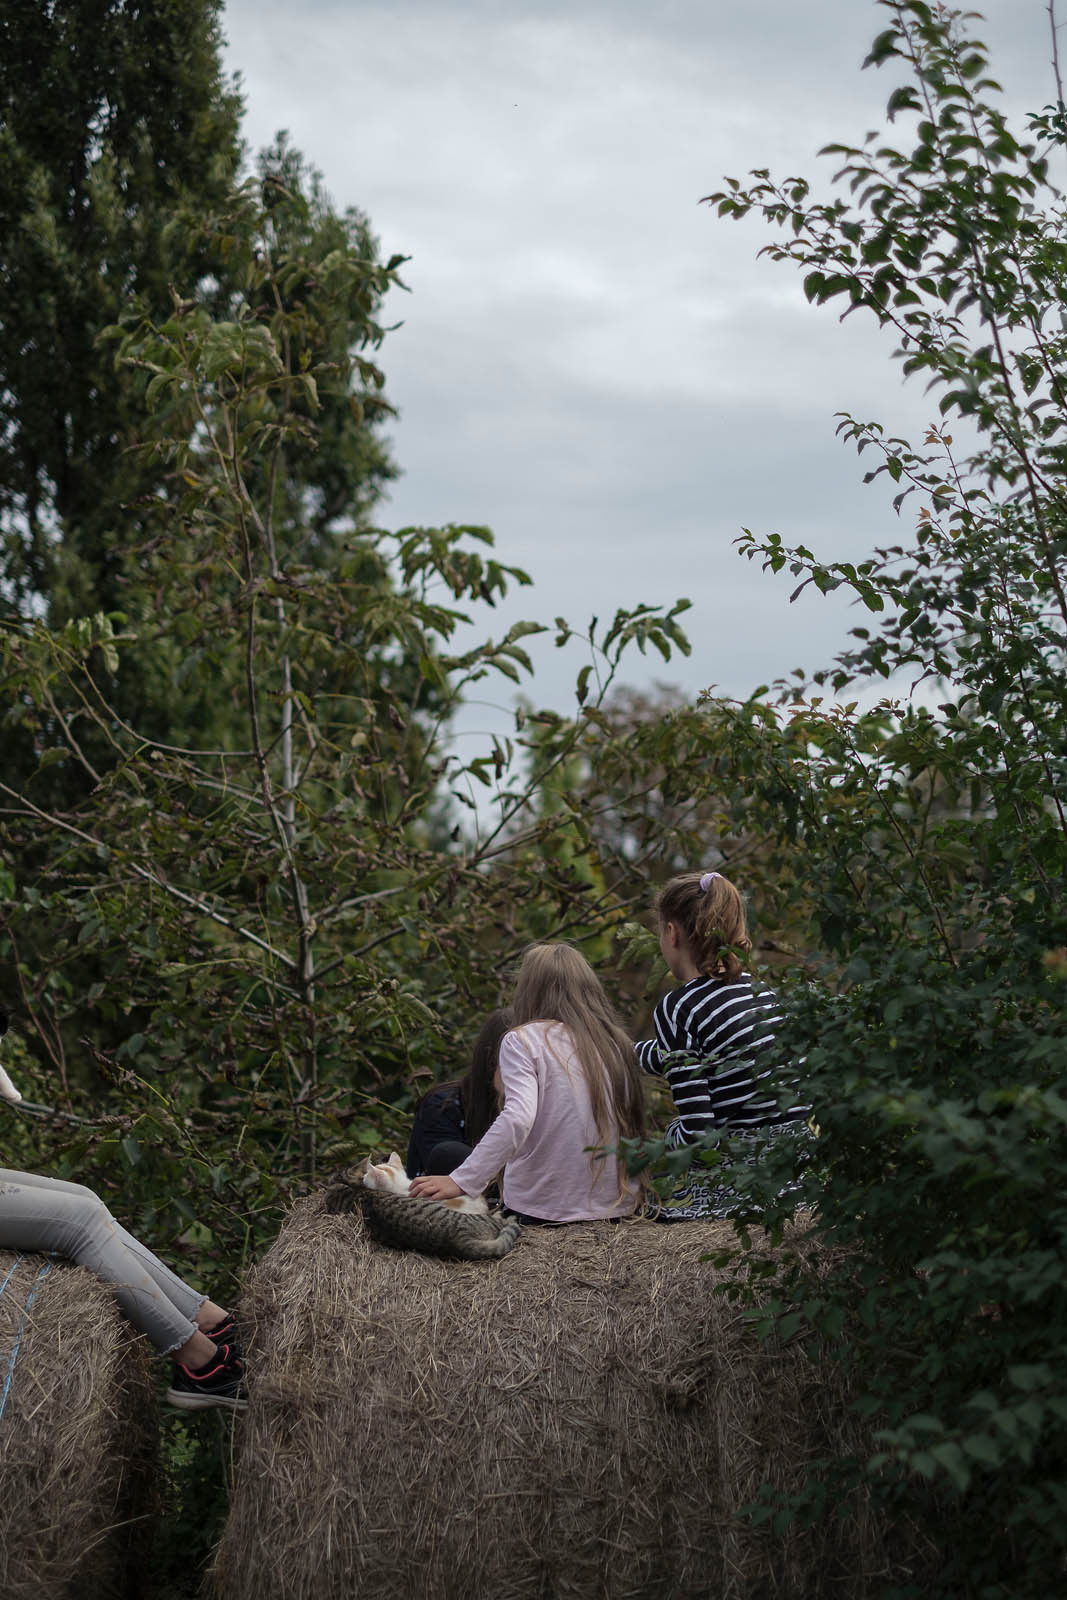 Experience therapy for teenage girls in foster care in Márokföld, Hungary